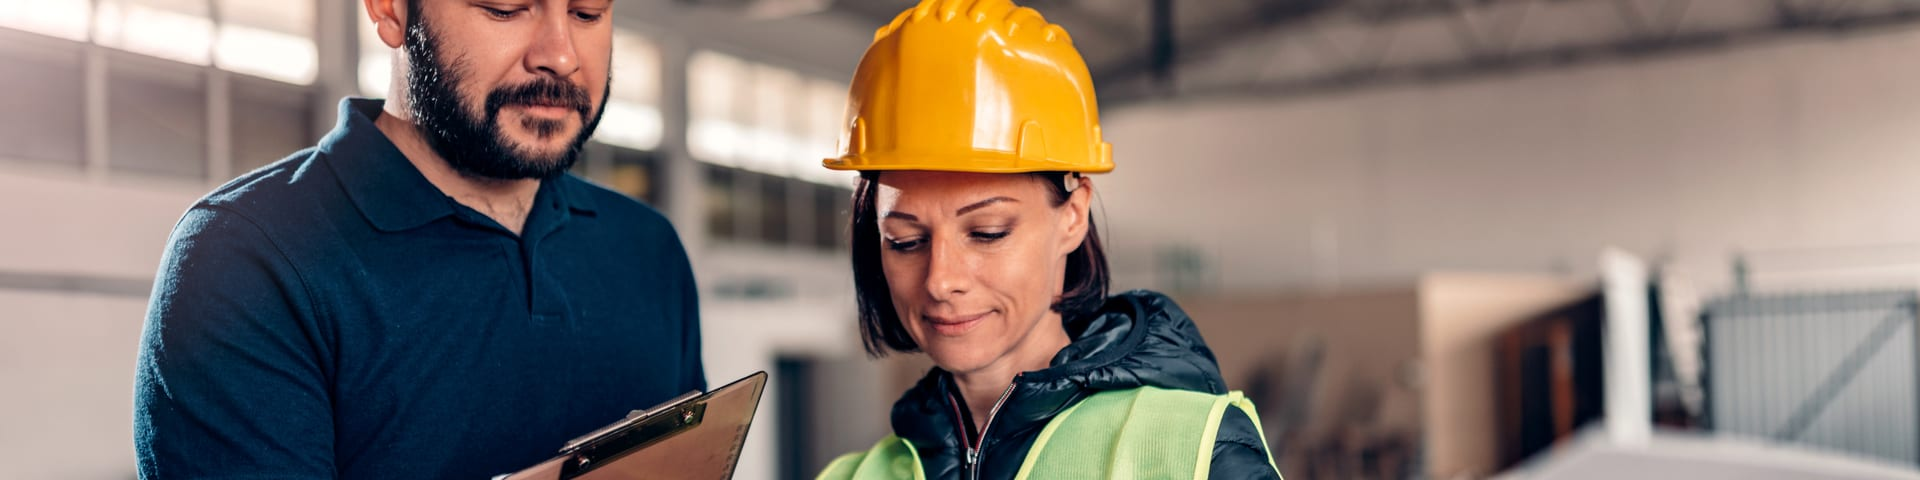 Construction Site Safety Inspections – What To Include at the Start of the Project?